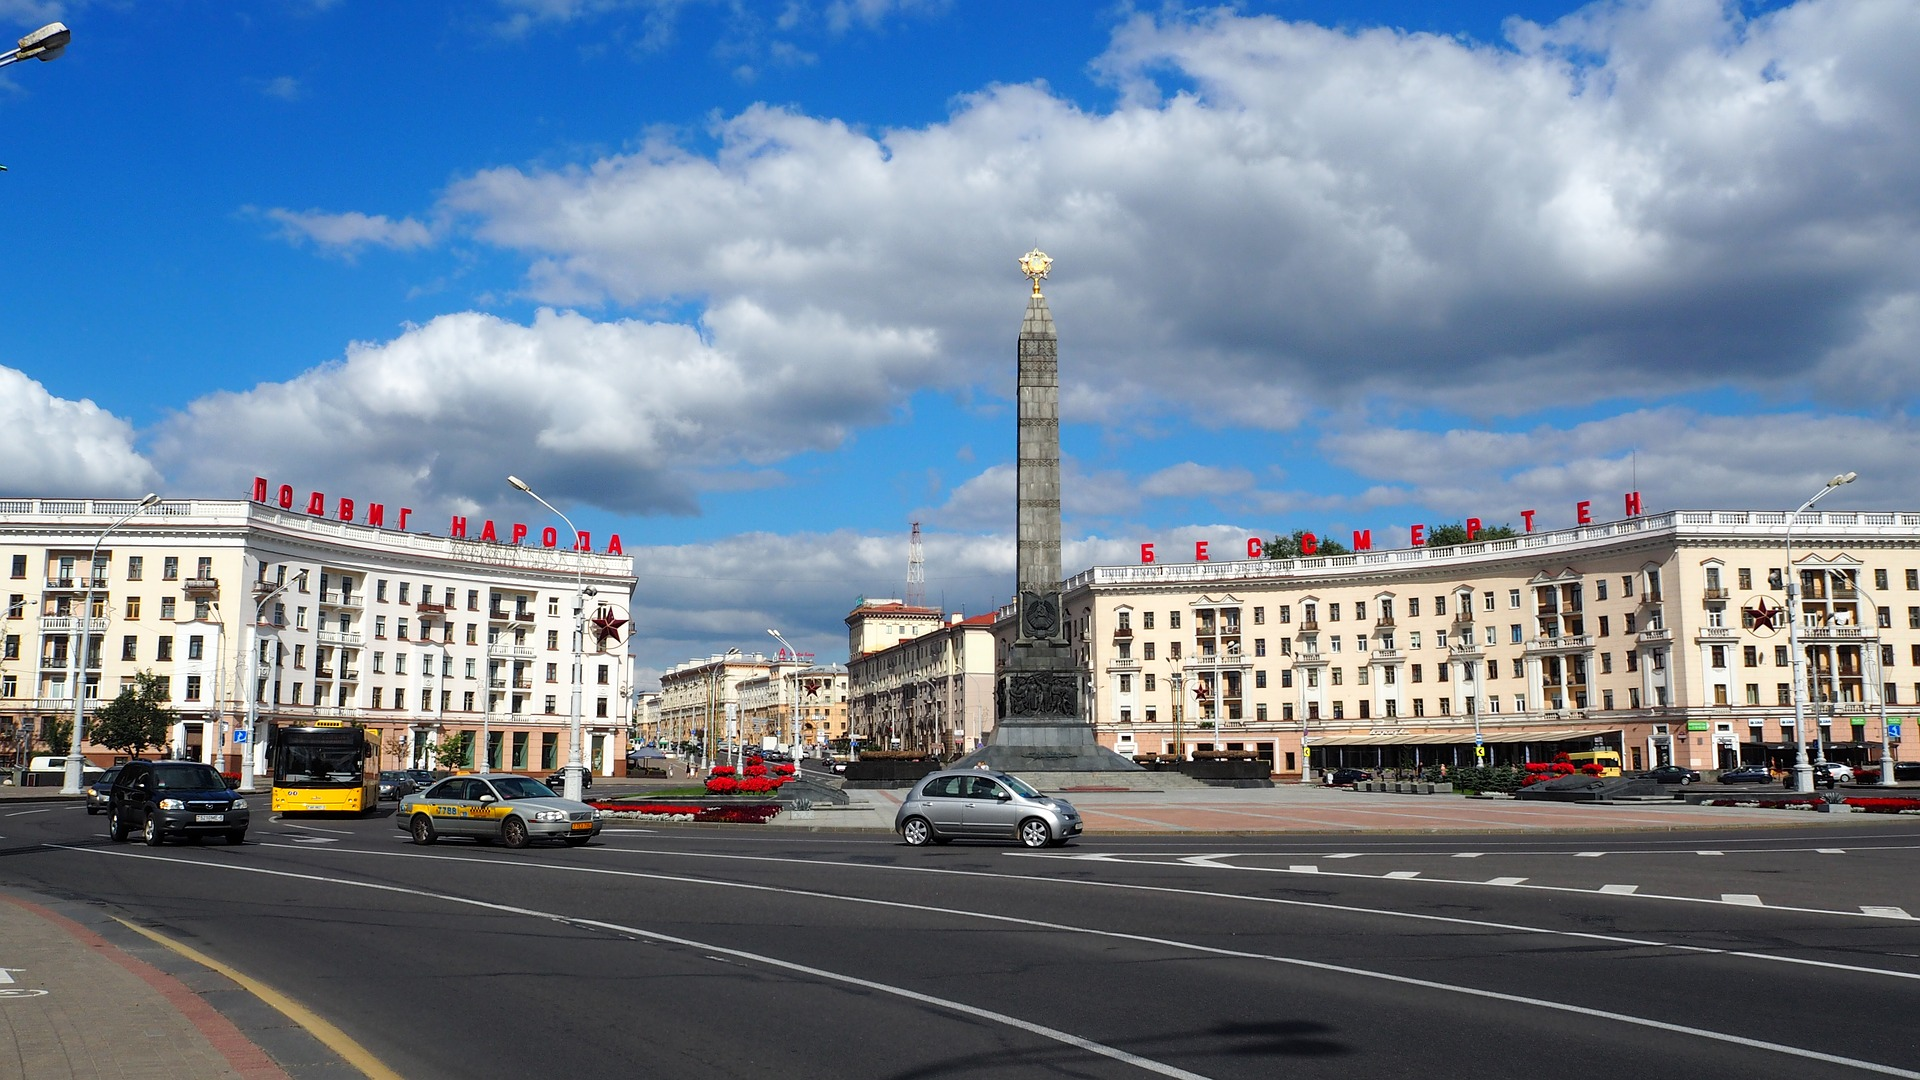 Minsk airport to city center, Minsk airport to city, How To Get From Minsk Airport To City Center